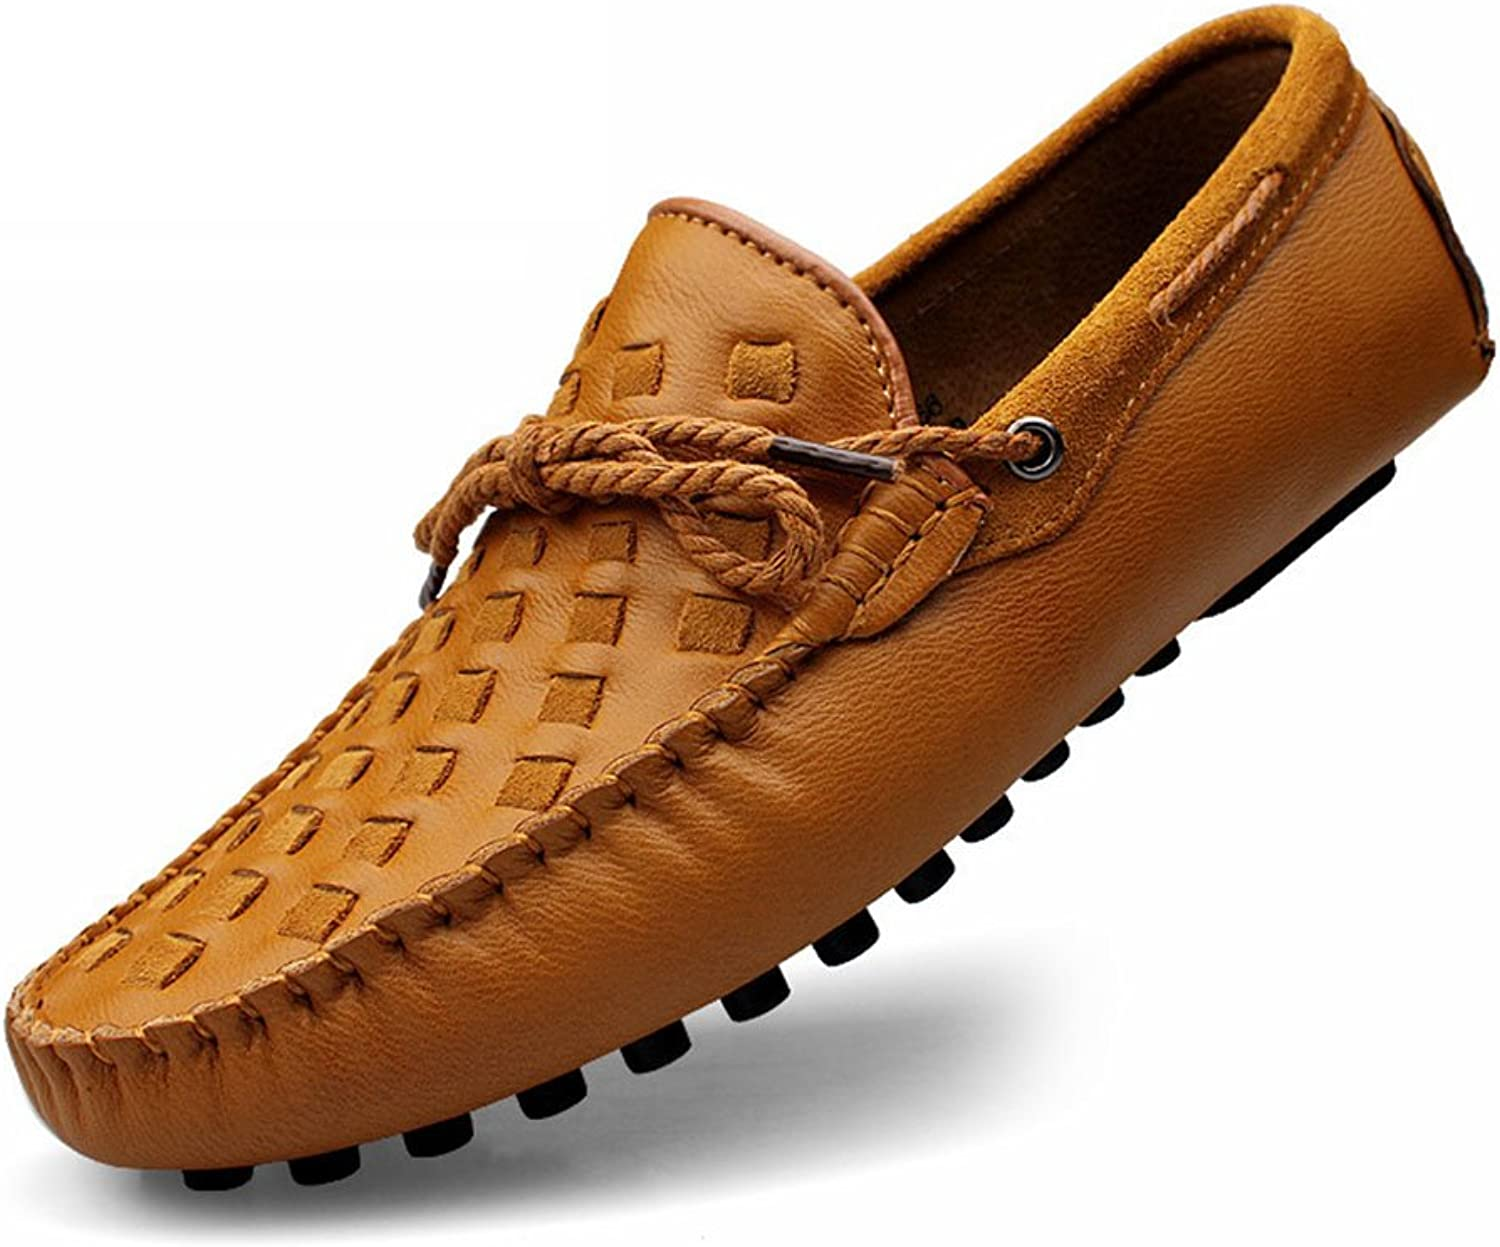 Men's Suede Casual shoes England Wear-Resistant Breathable Driving shoes Moccasin